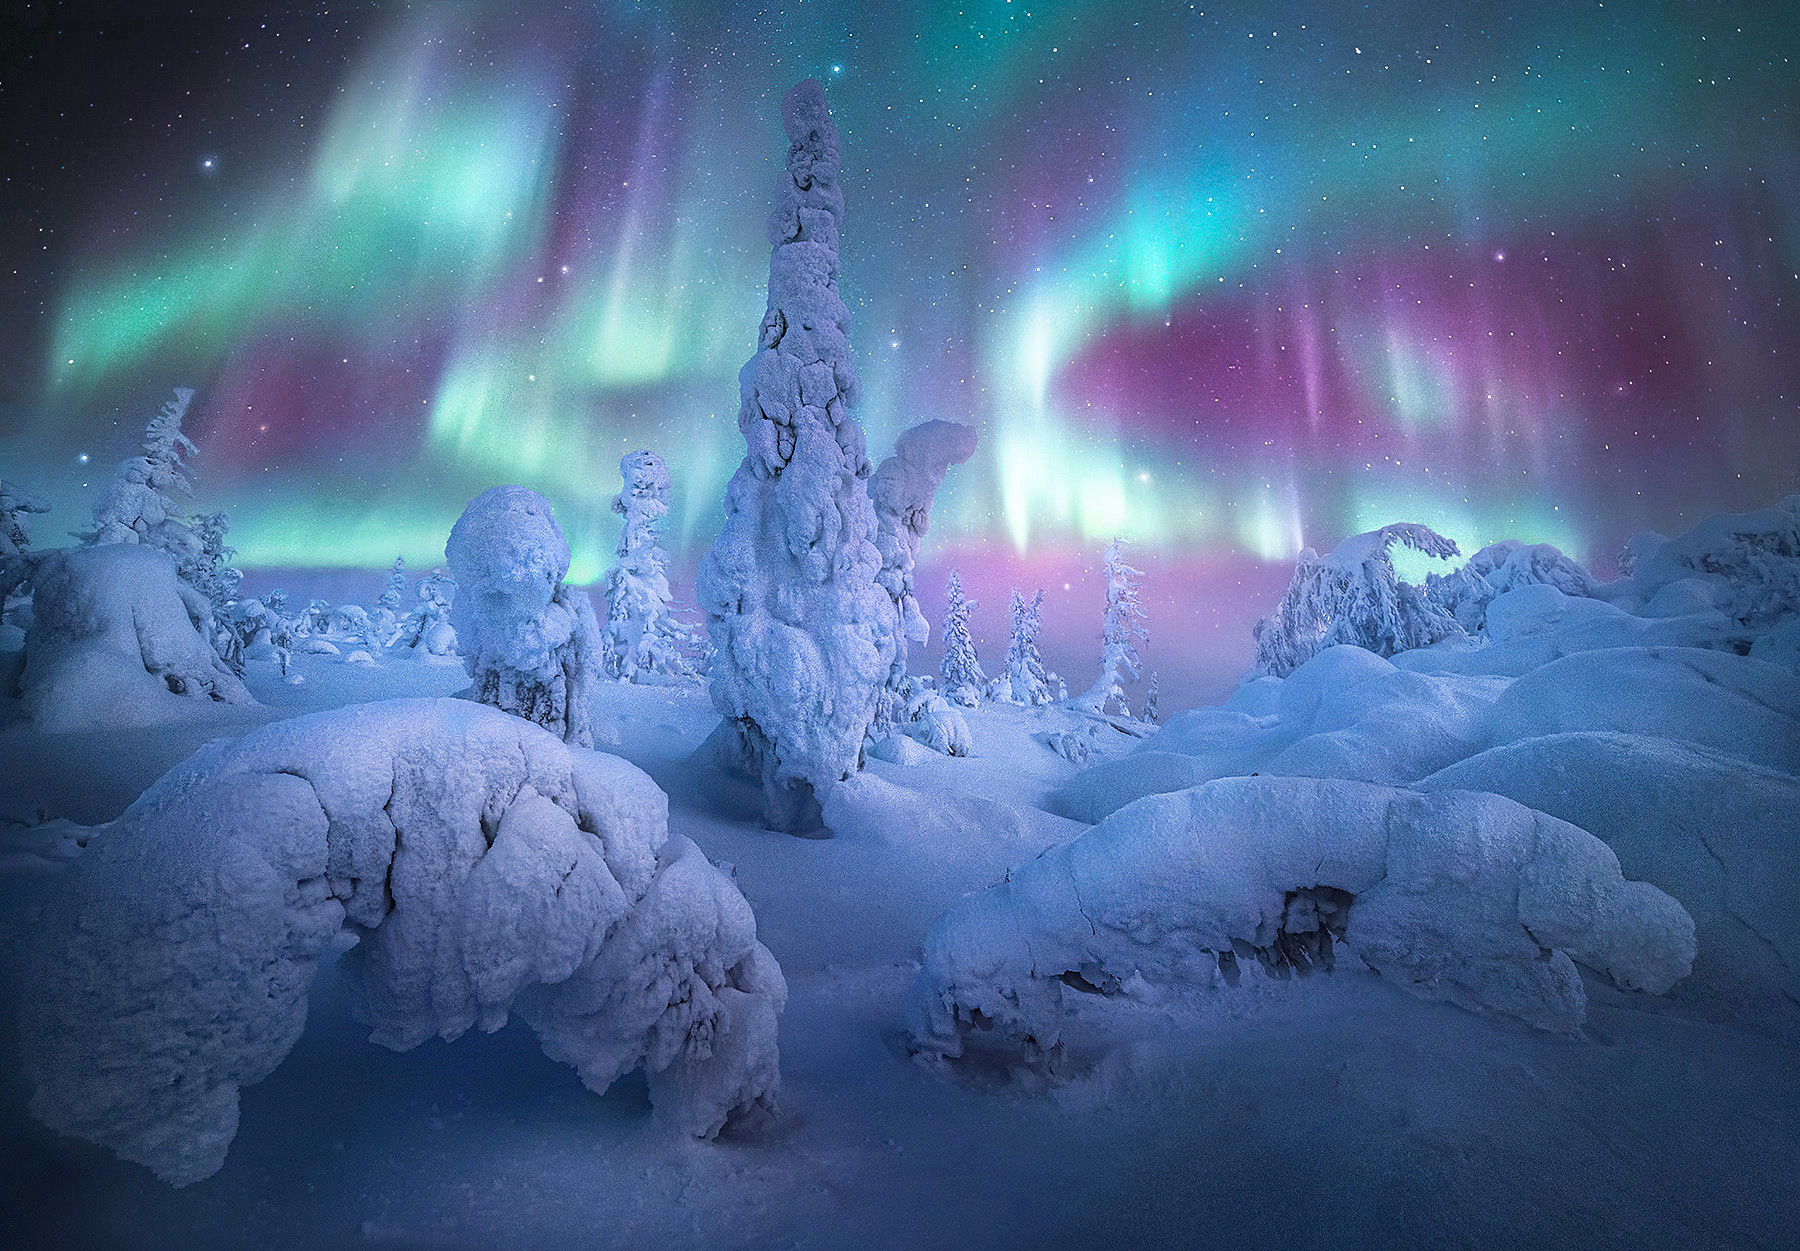 The dance of the Aurora Borealis near my campsite in a forest of rime ice covered trees in Alaska not far from the Yukon River...